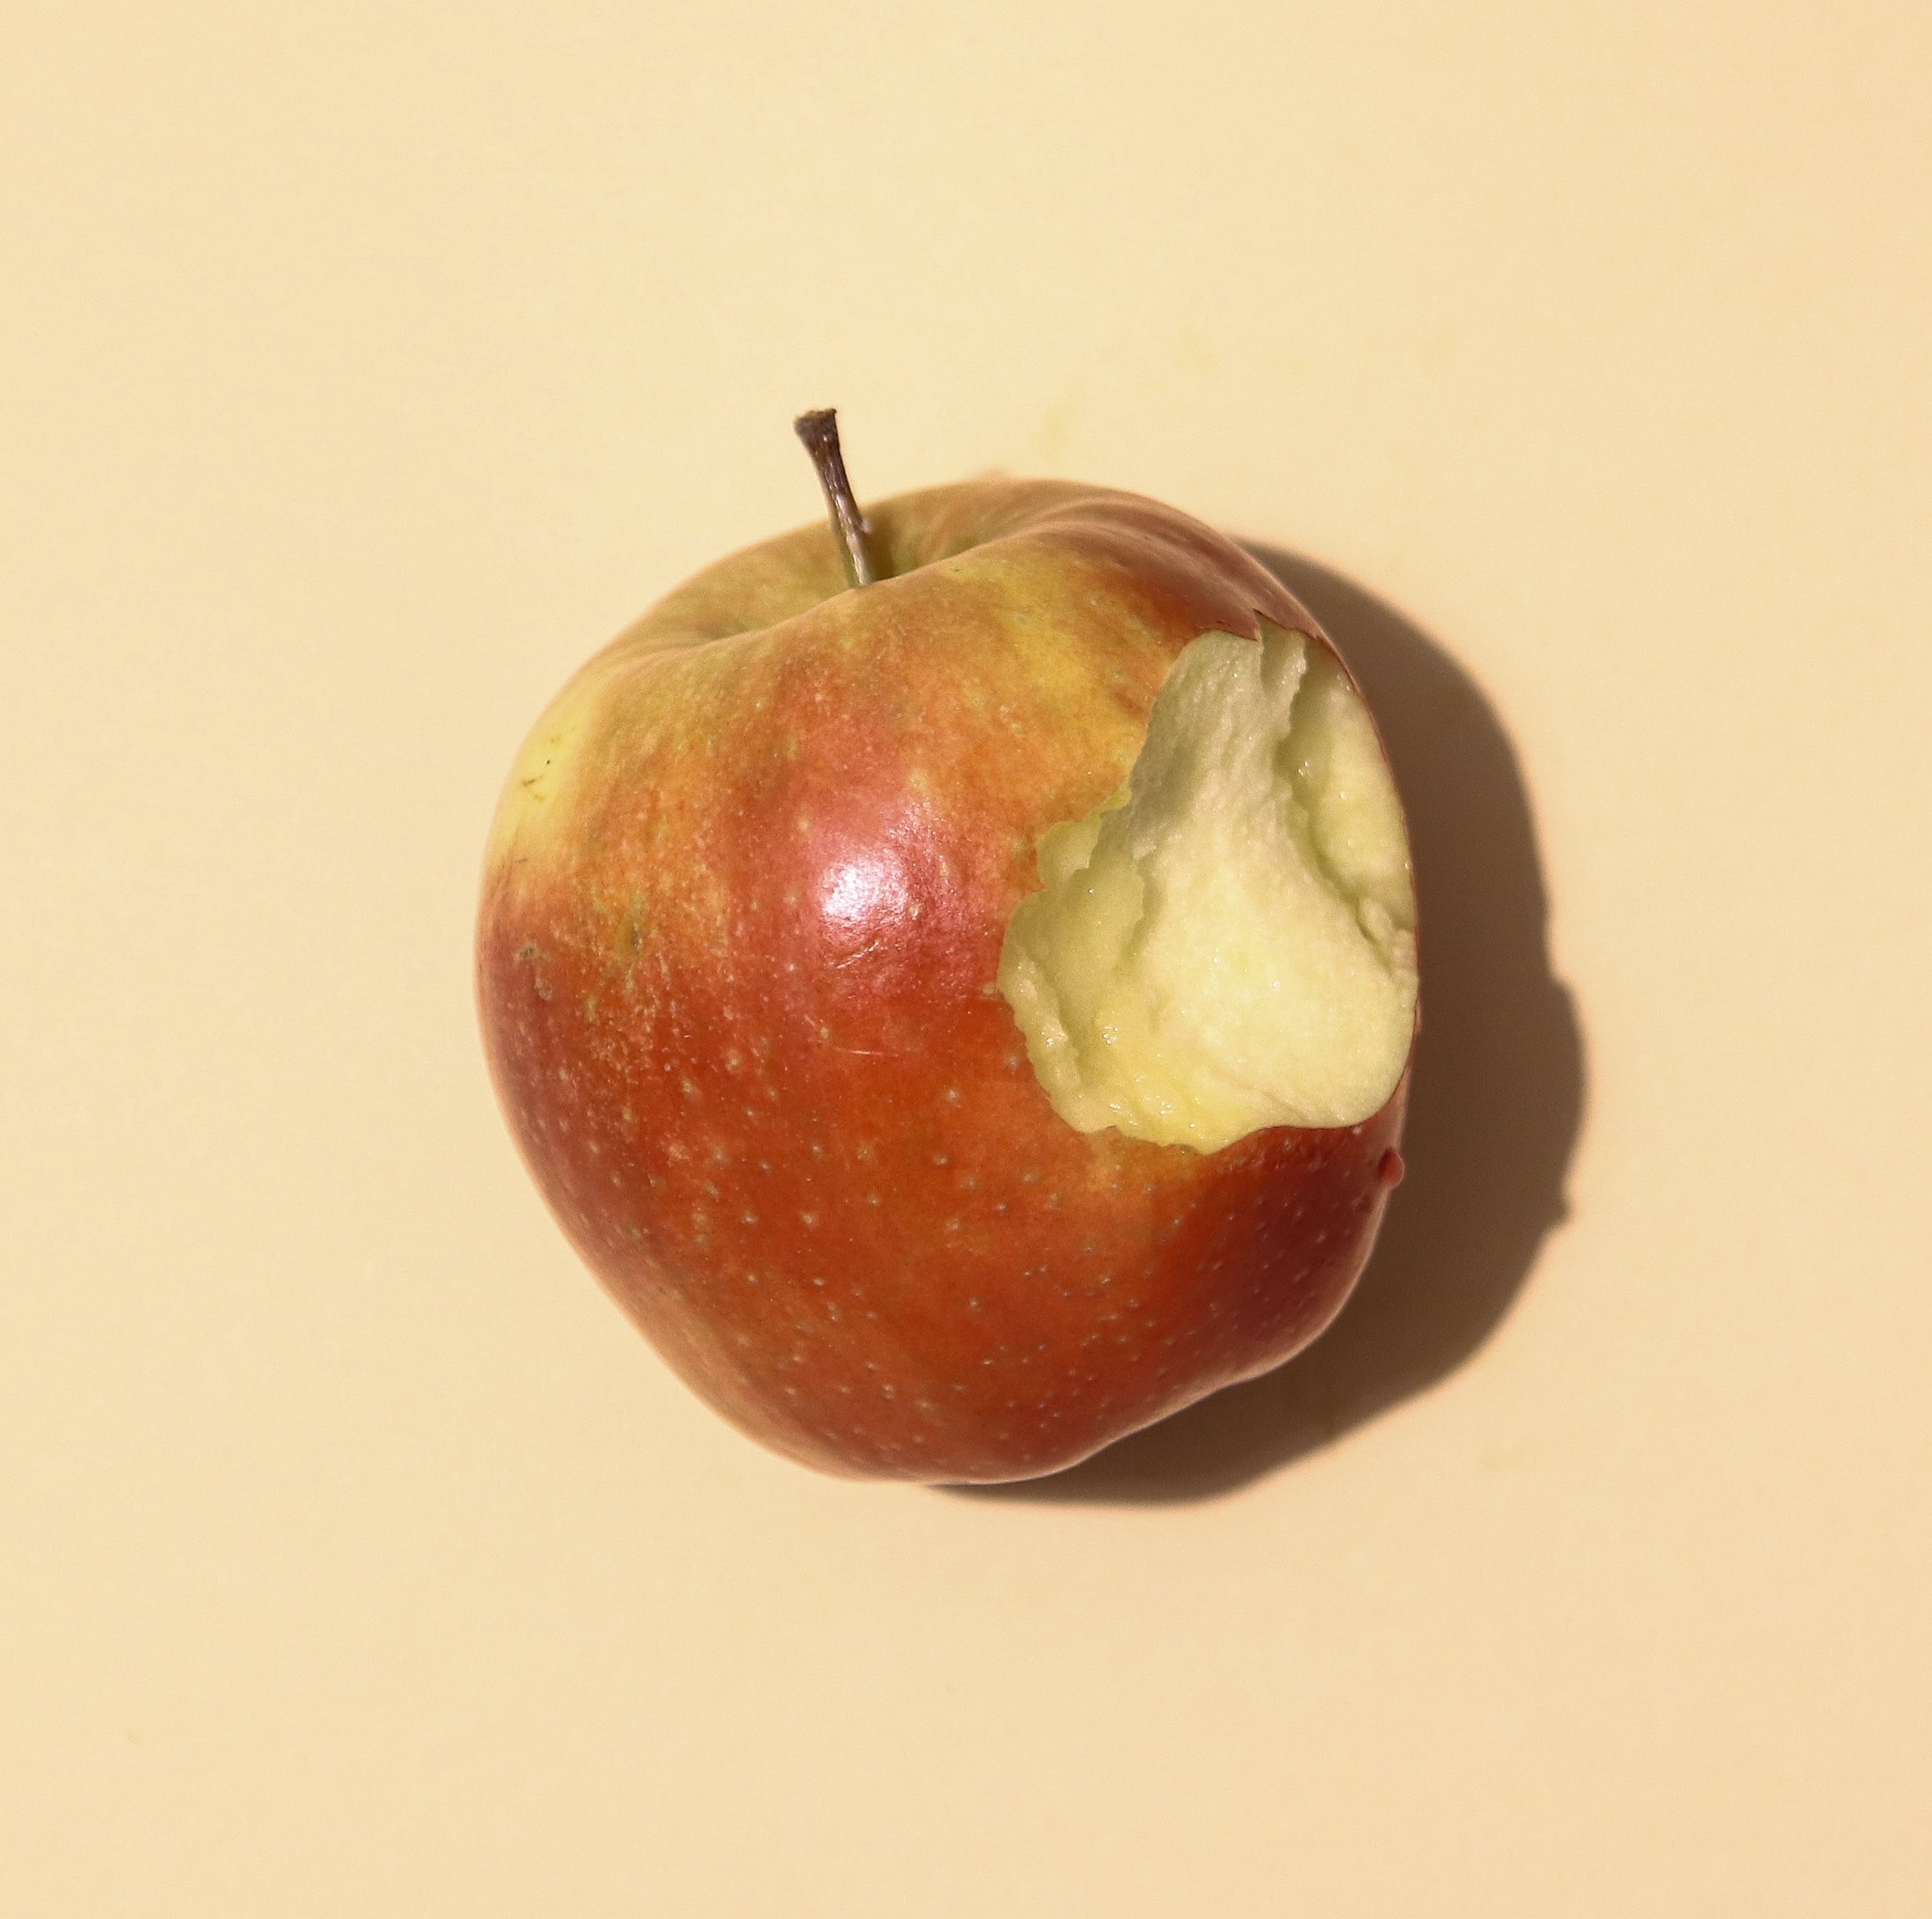 apple with a bite taken out of it